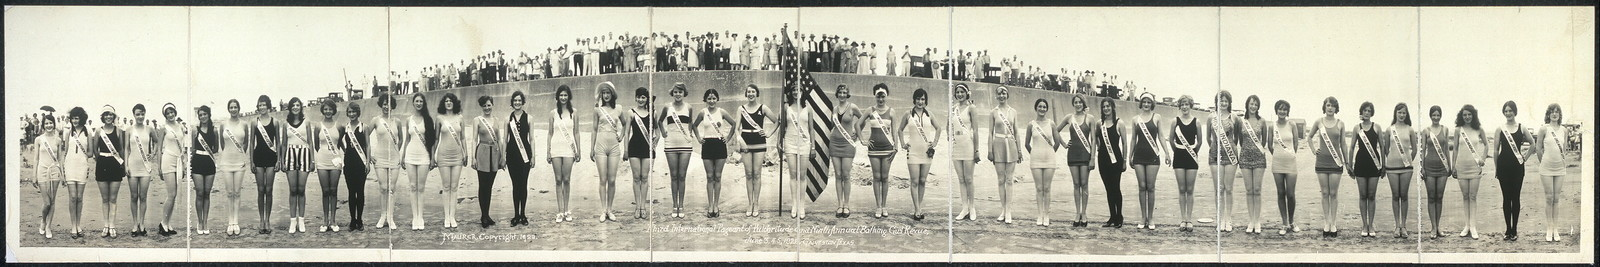 Third International Pageant of Pulchritude and Ninth Annual Bathing Girl Revue, June 3, 4, 5, 1928, Galveston, Texas